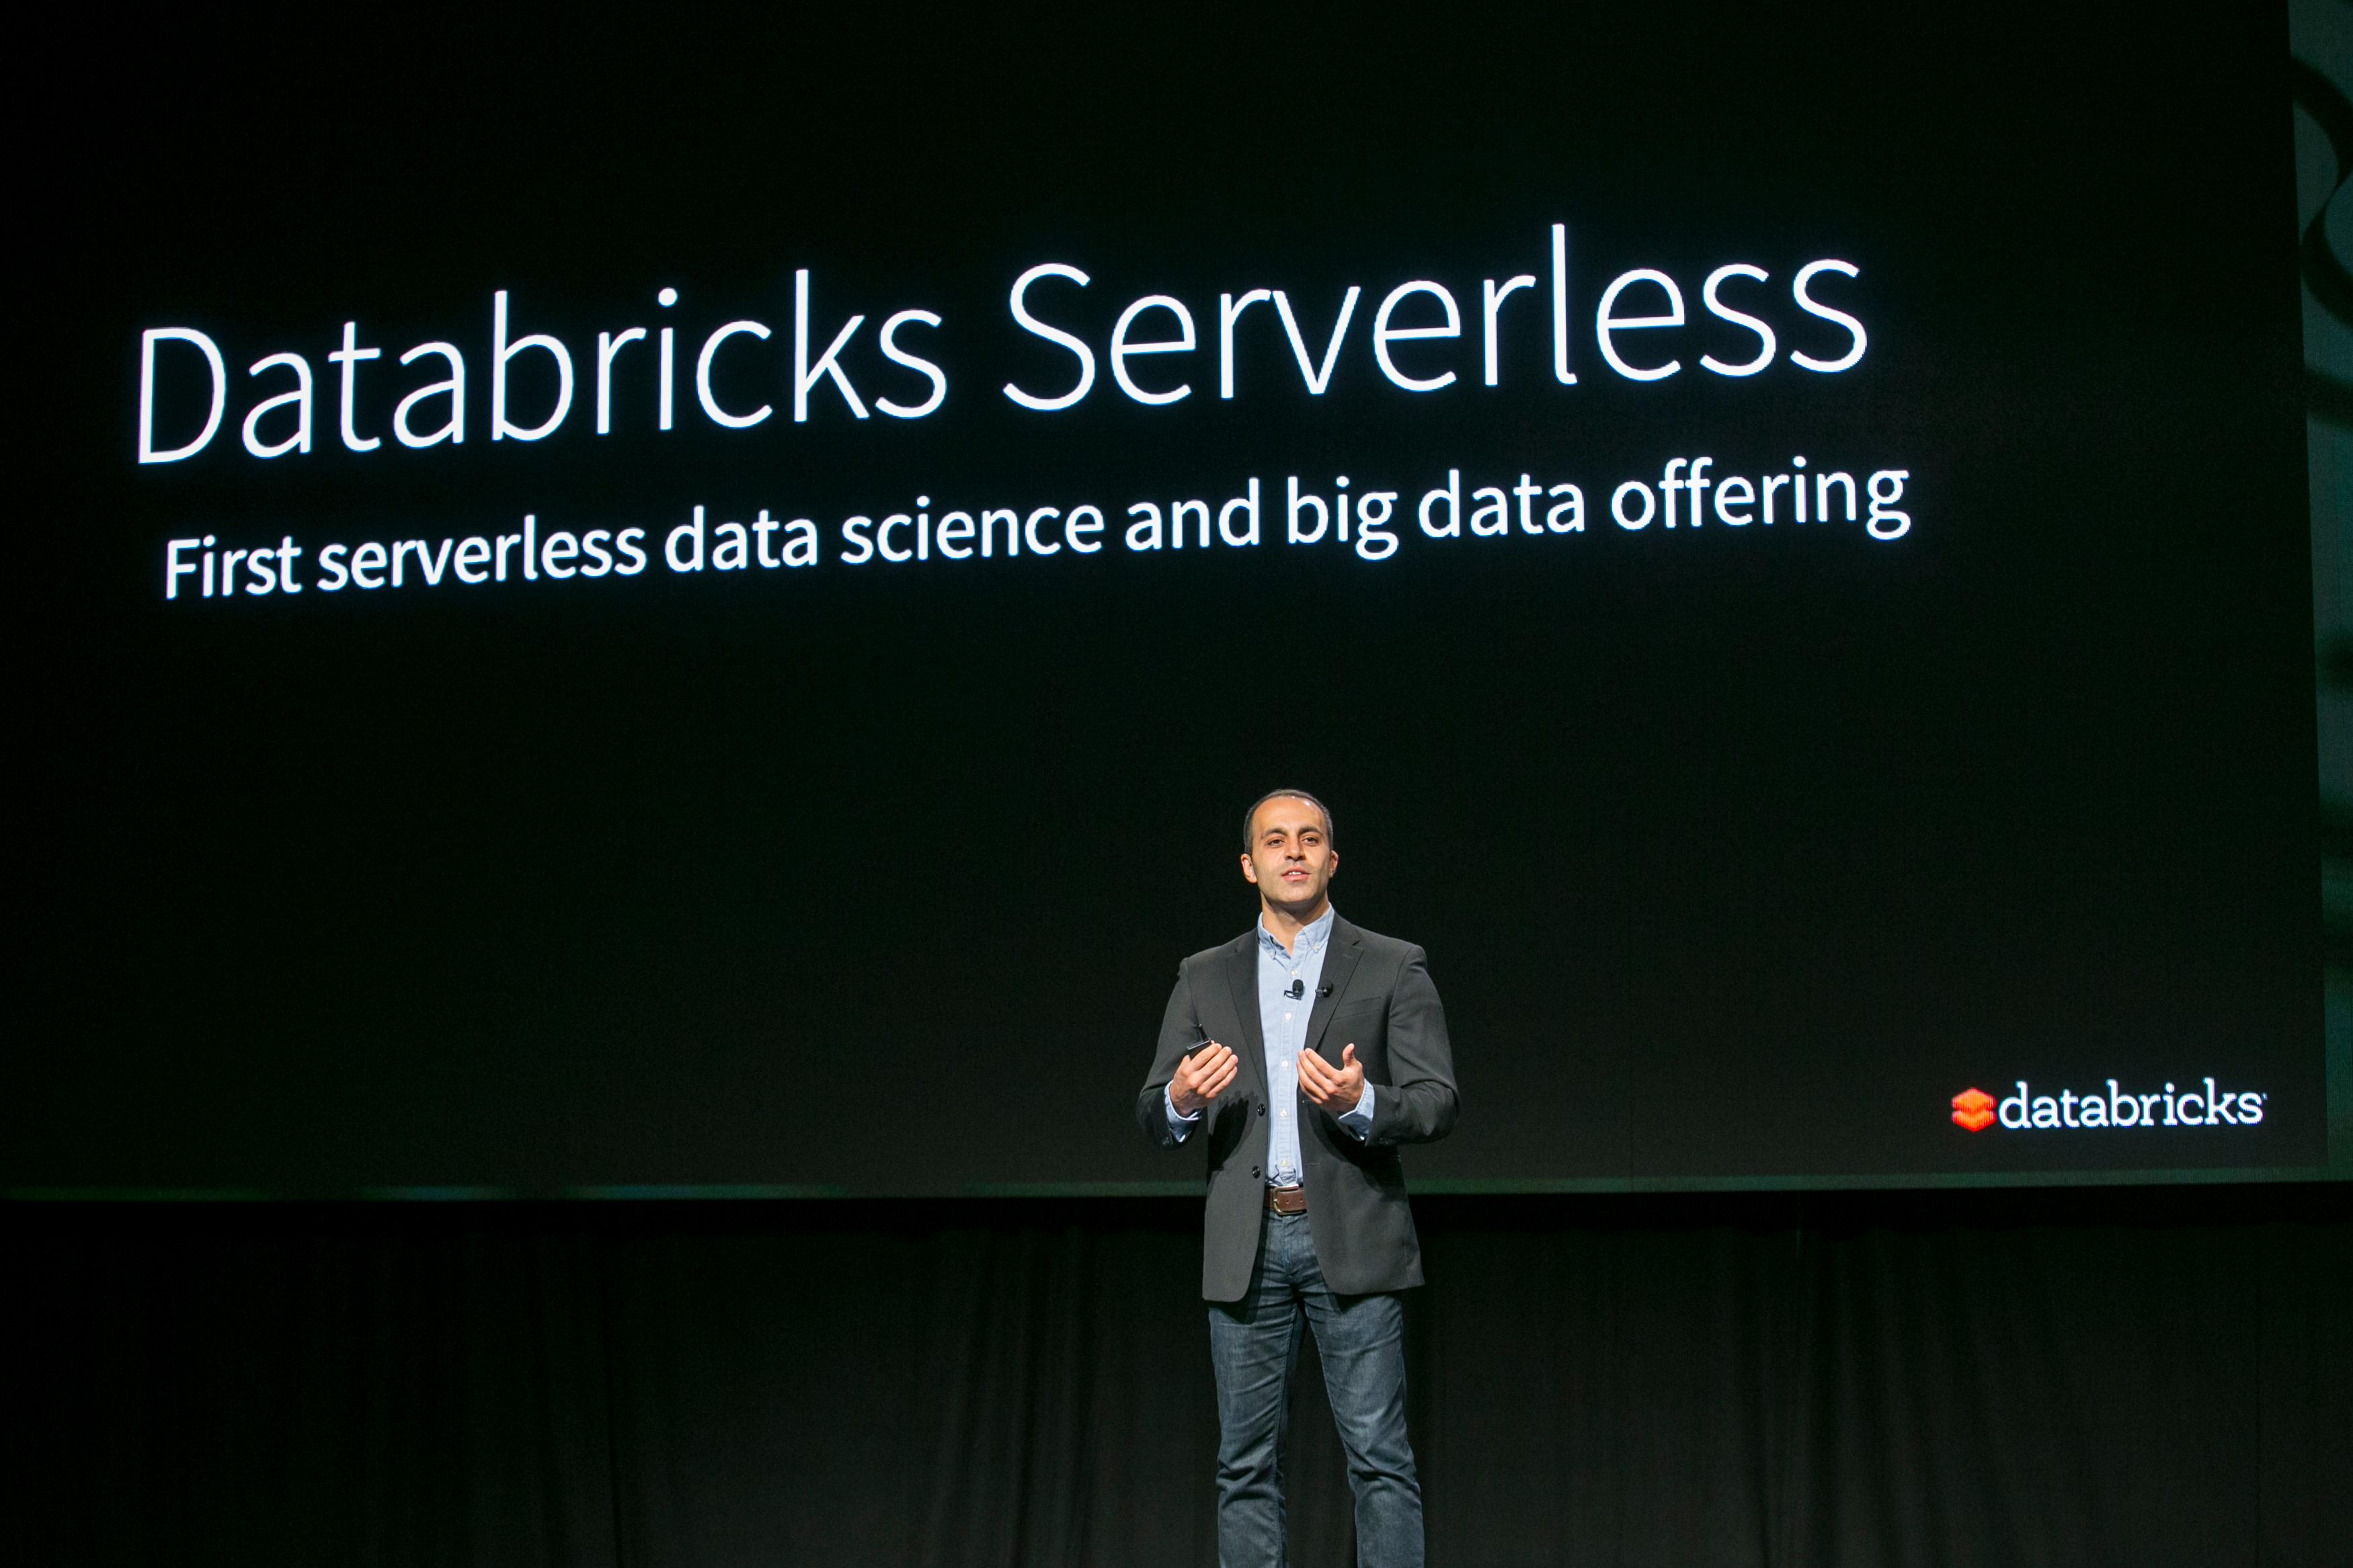 Databricks Raises $140M From Top VCs In Mission To Bring AI To